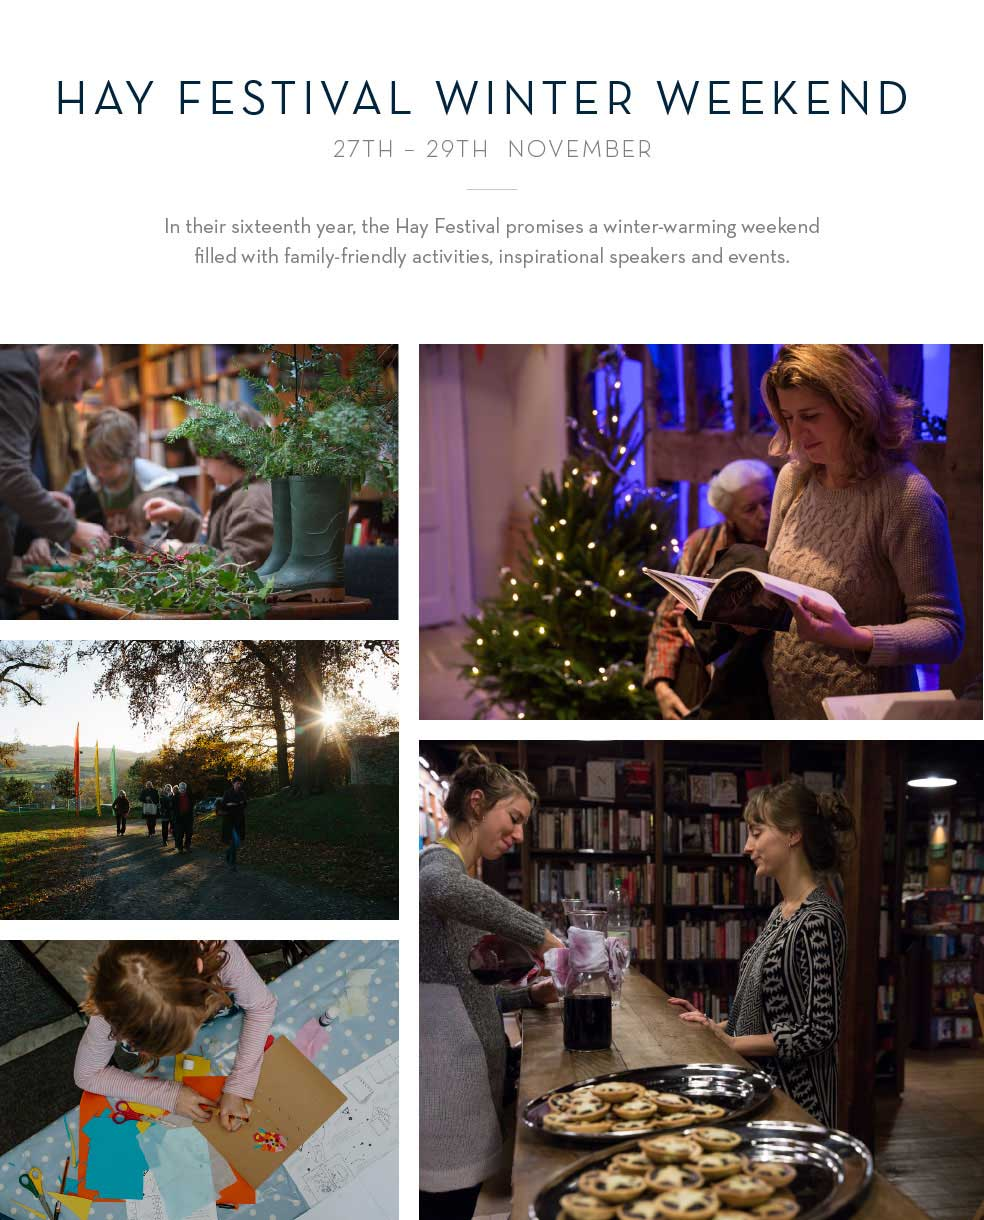 Hay Festival Winter Weekend 27th-29th November